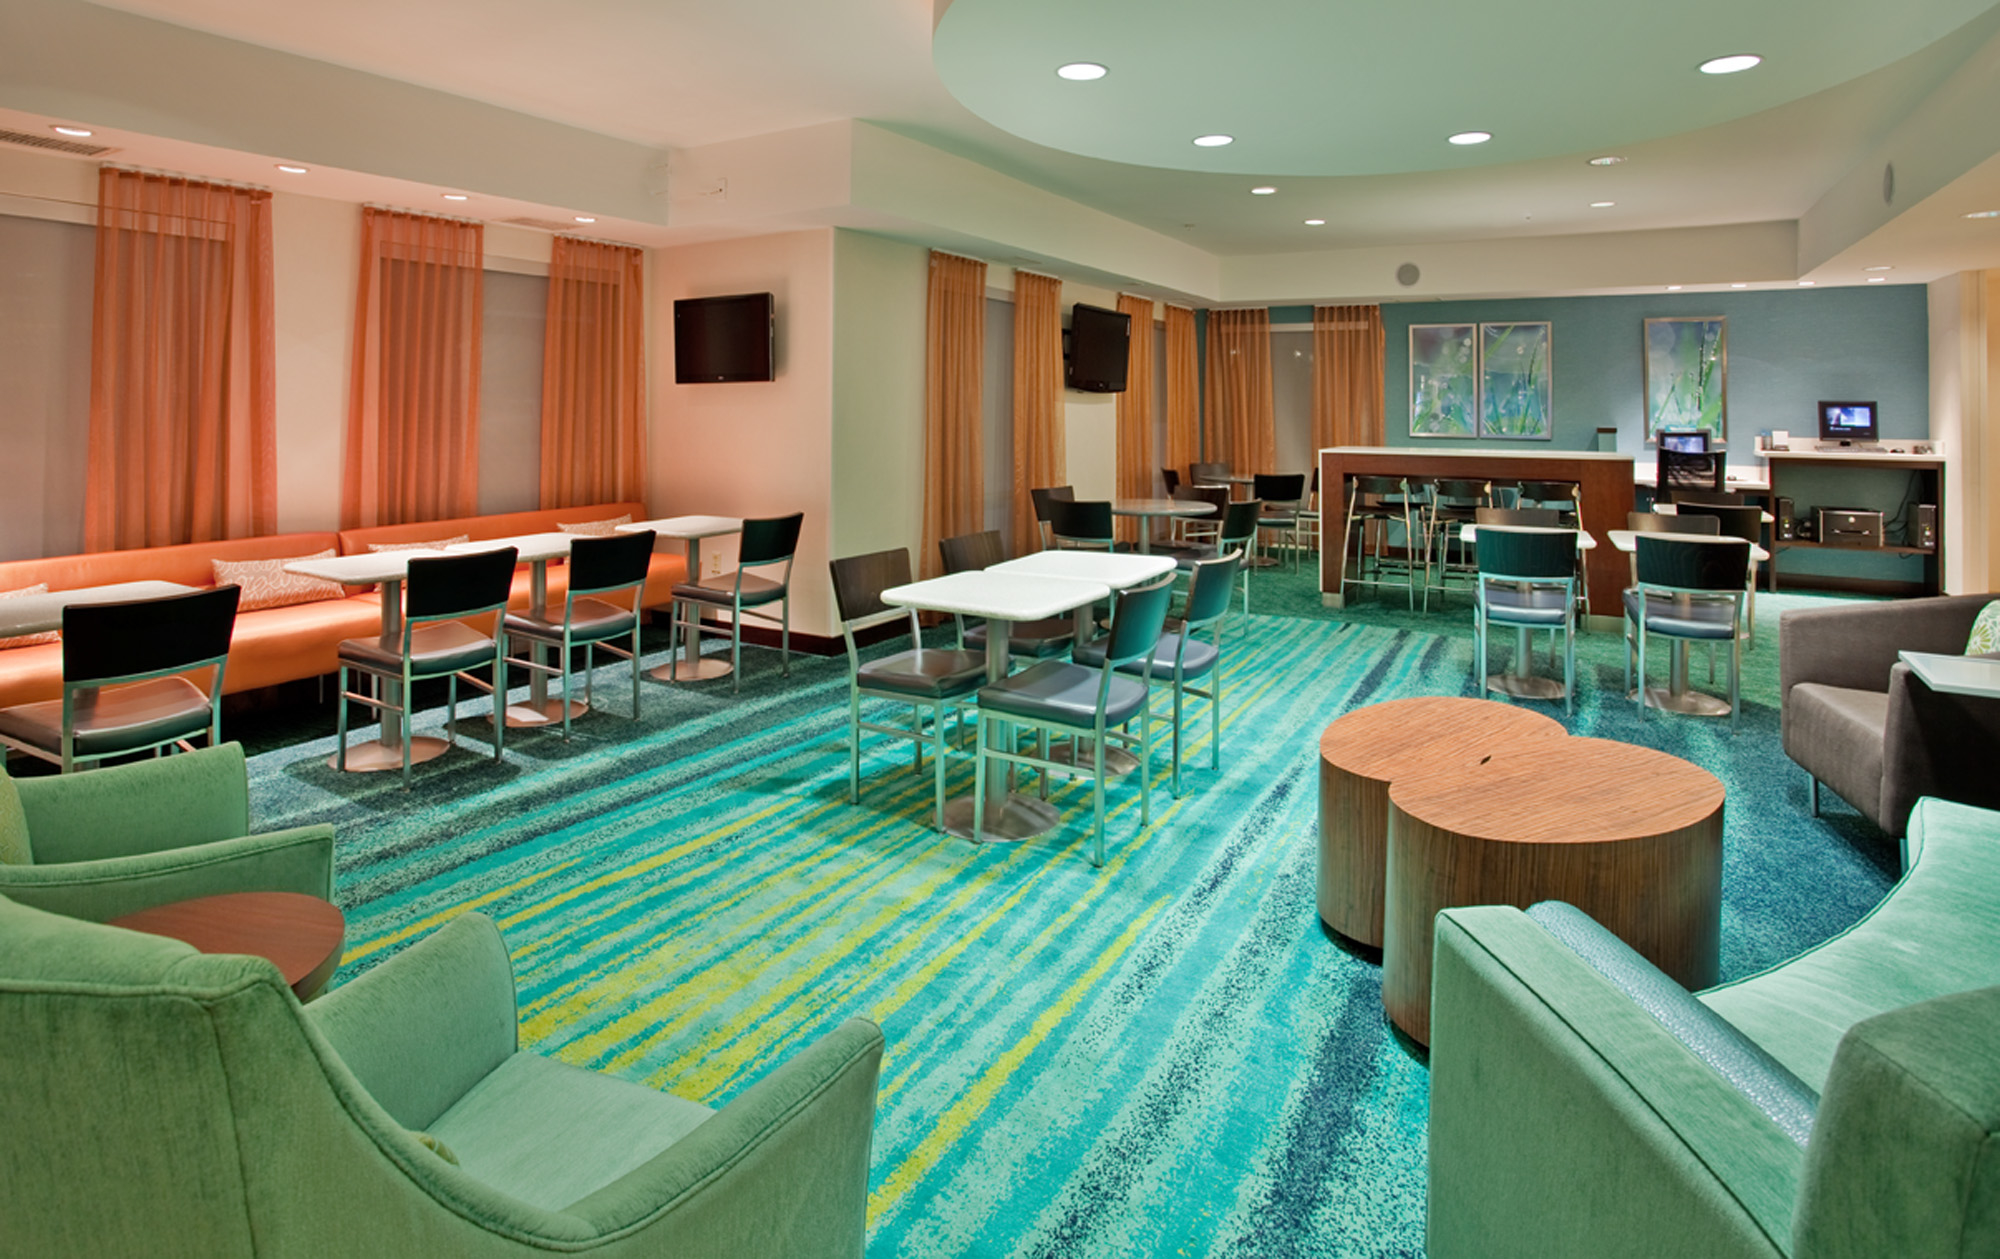 SpringHill Suites by Marriott Houston Brookhollow image 2